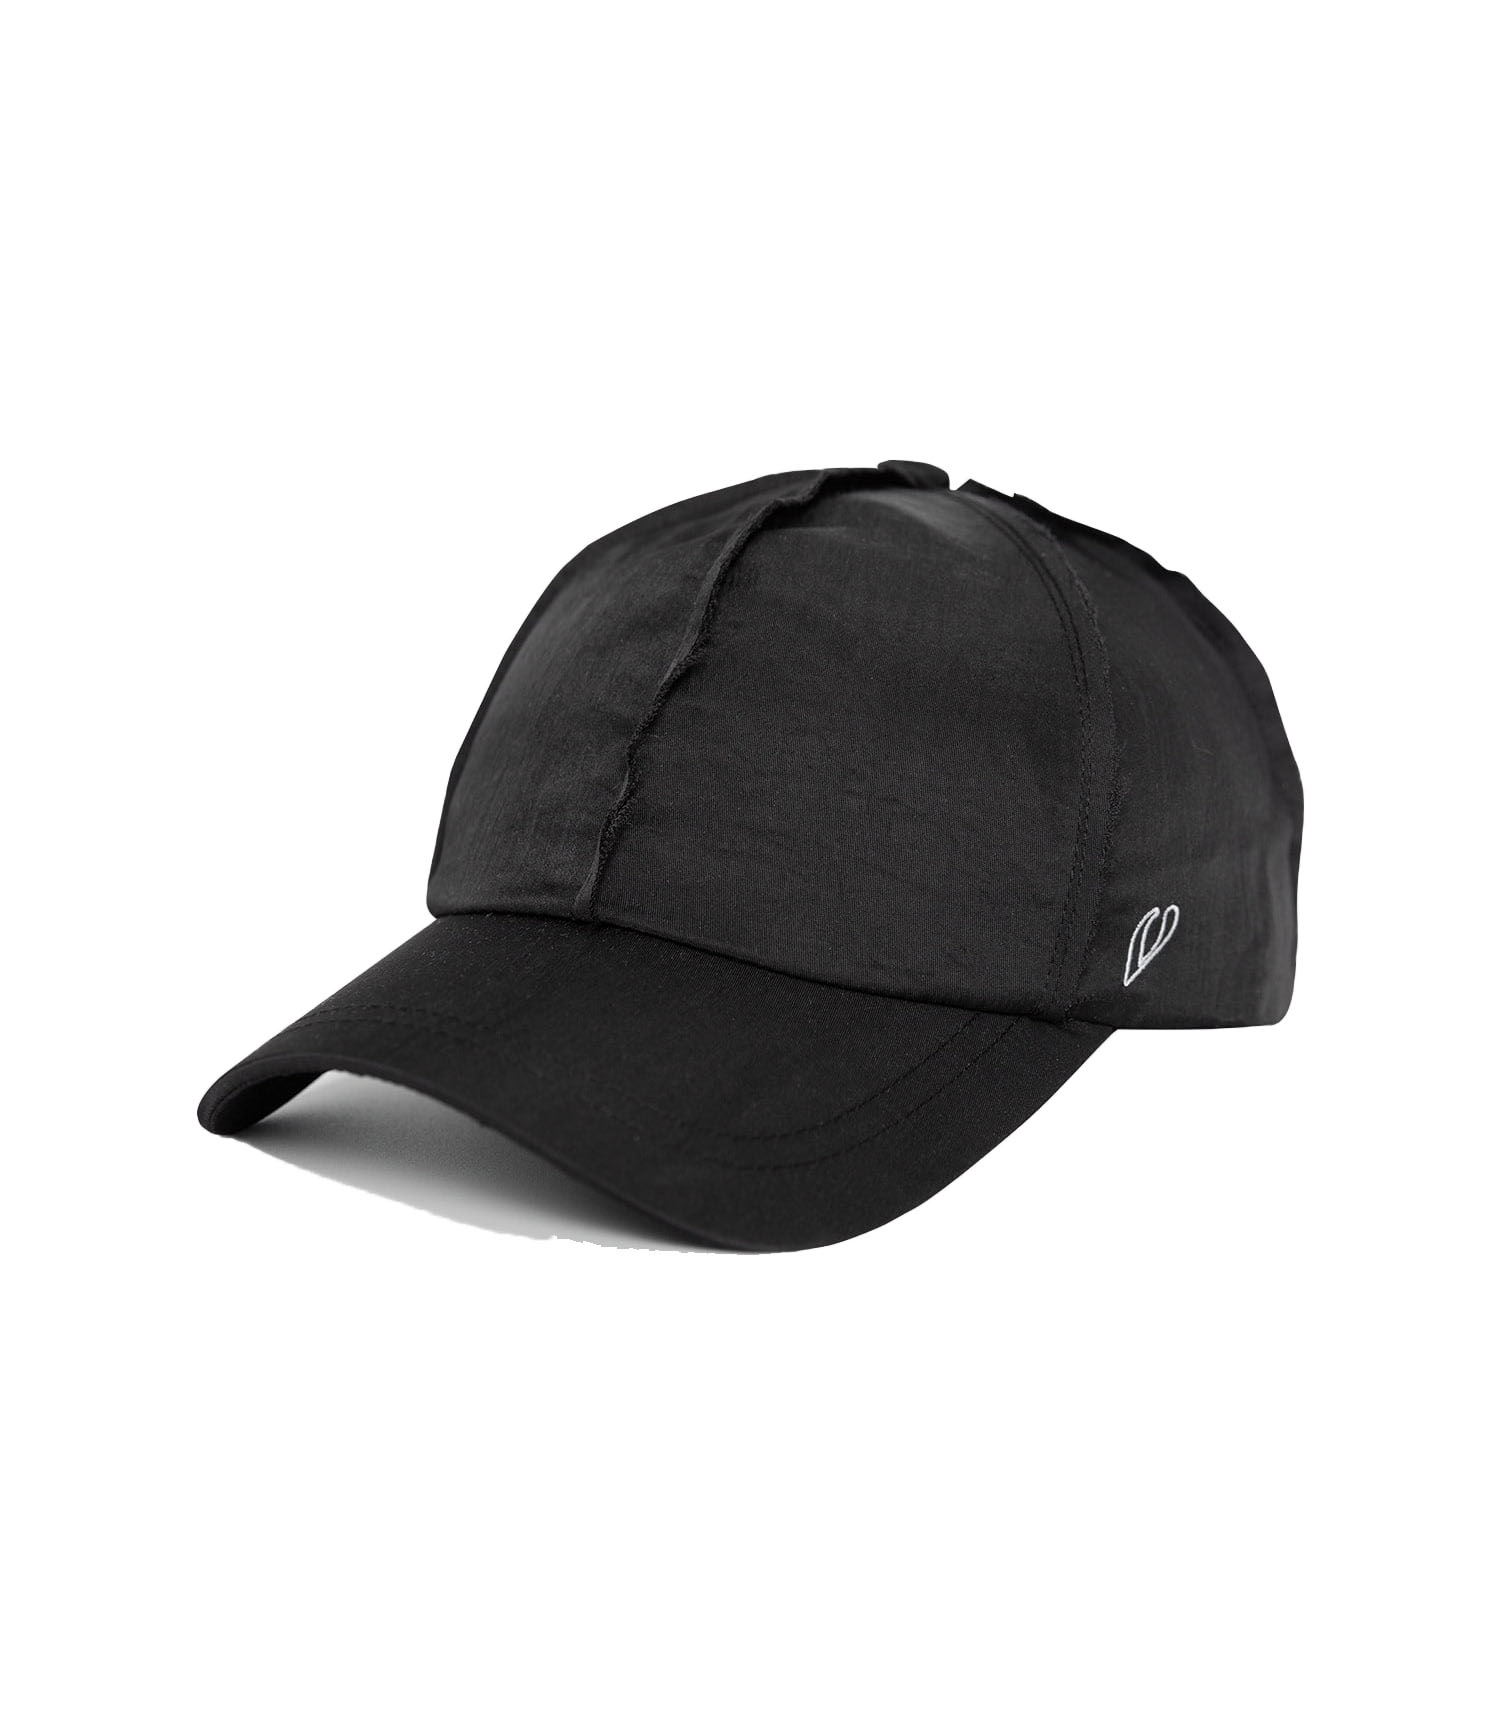 SHAKY BALL CAP (BLACK)